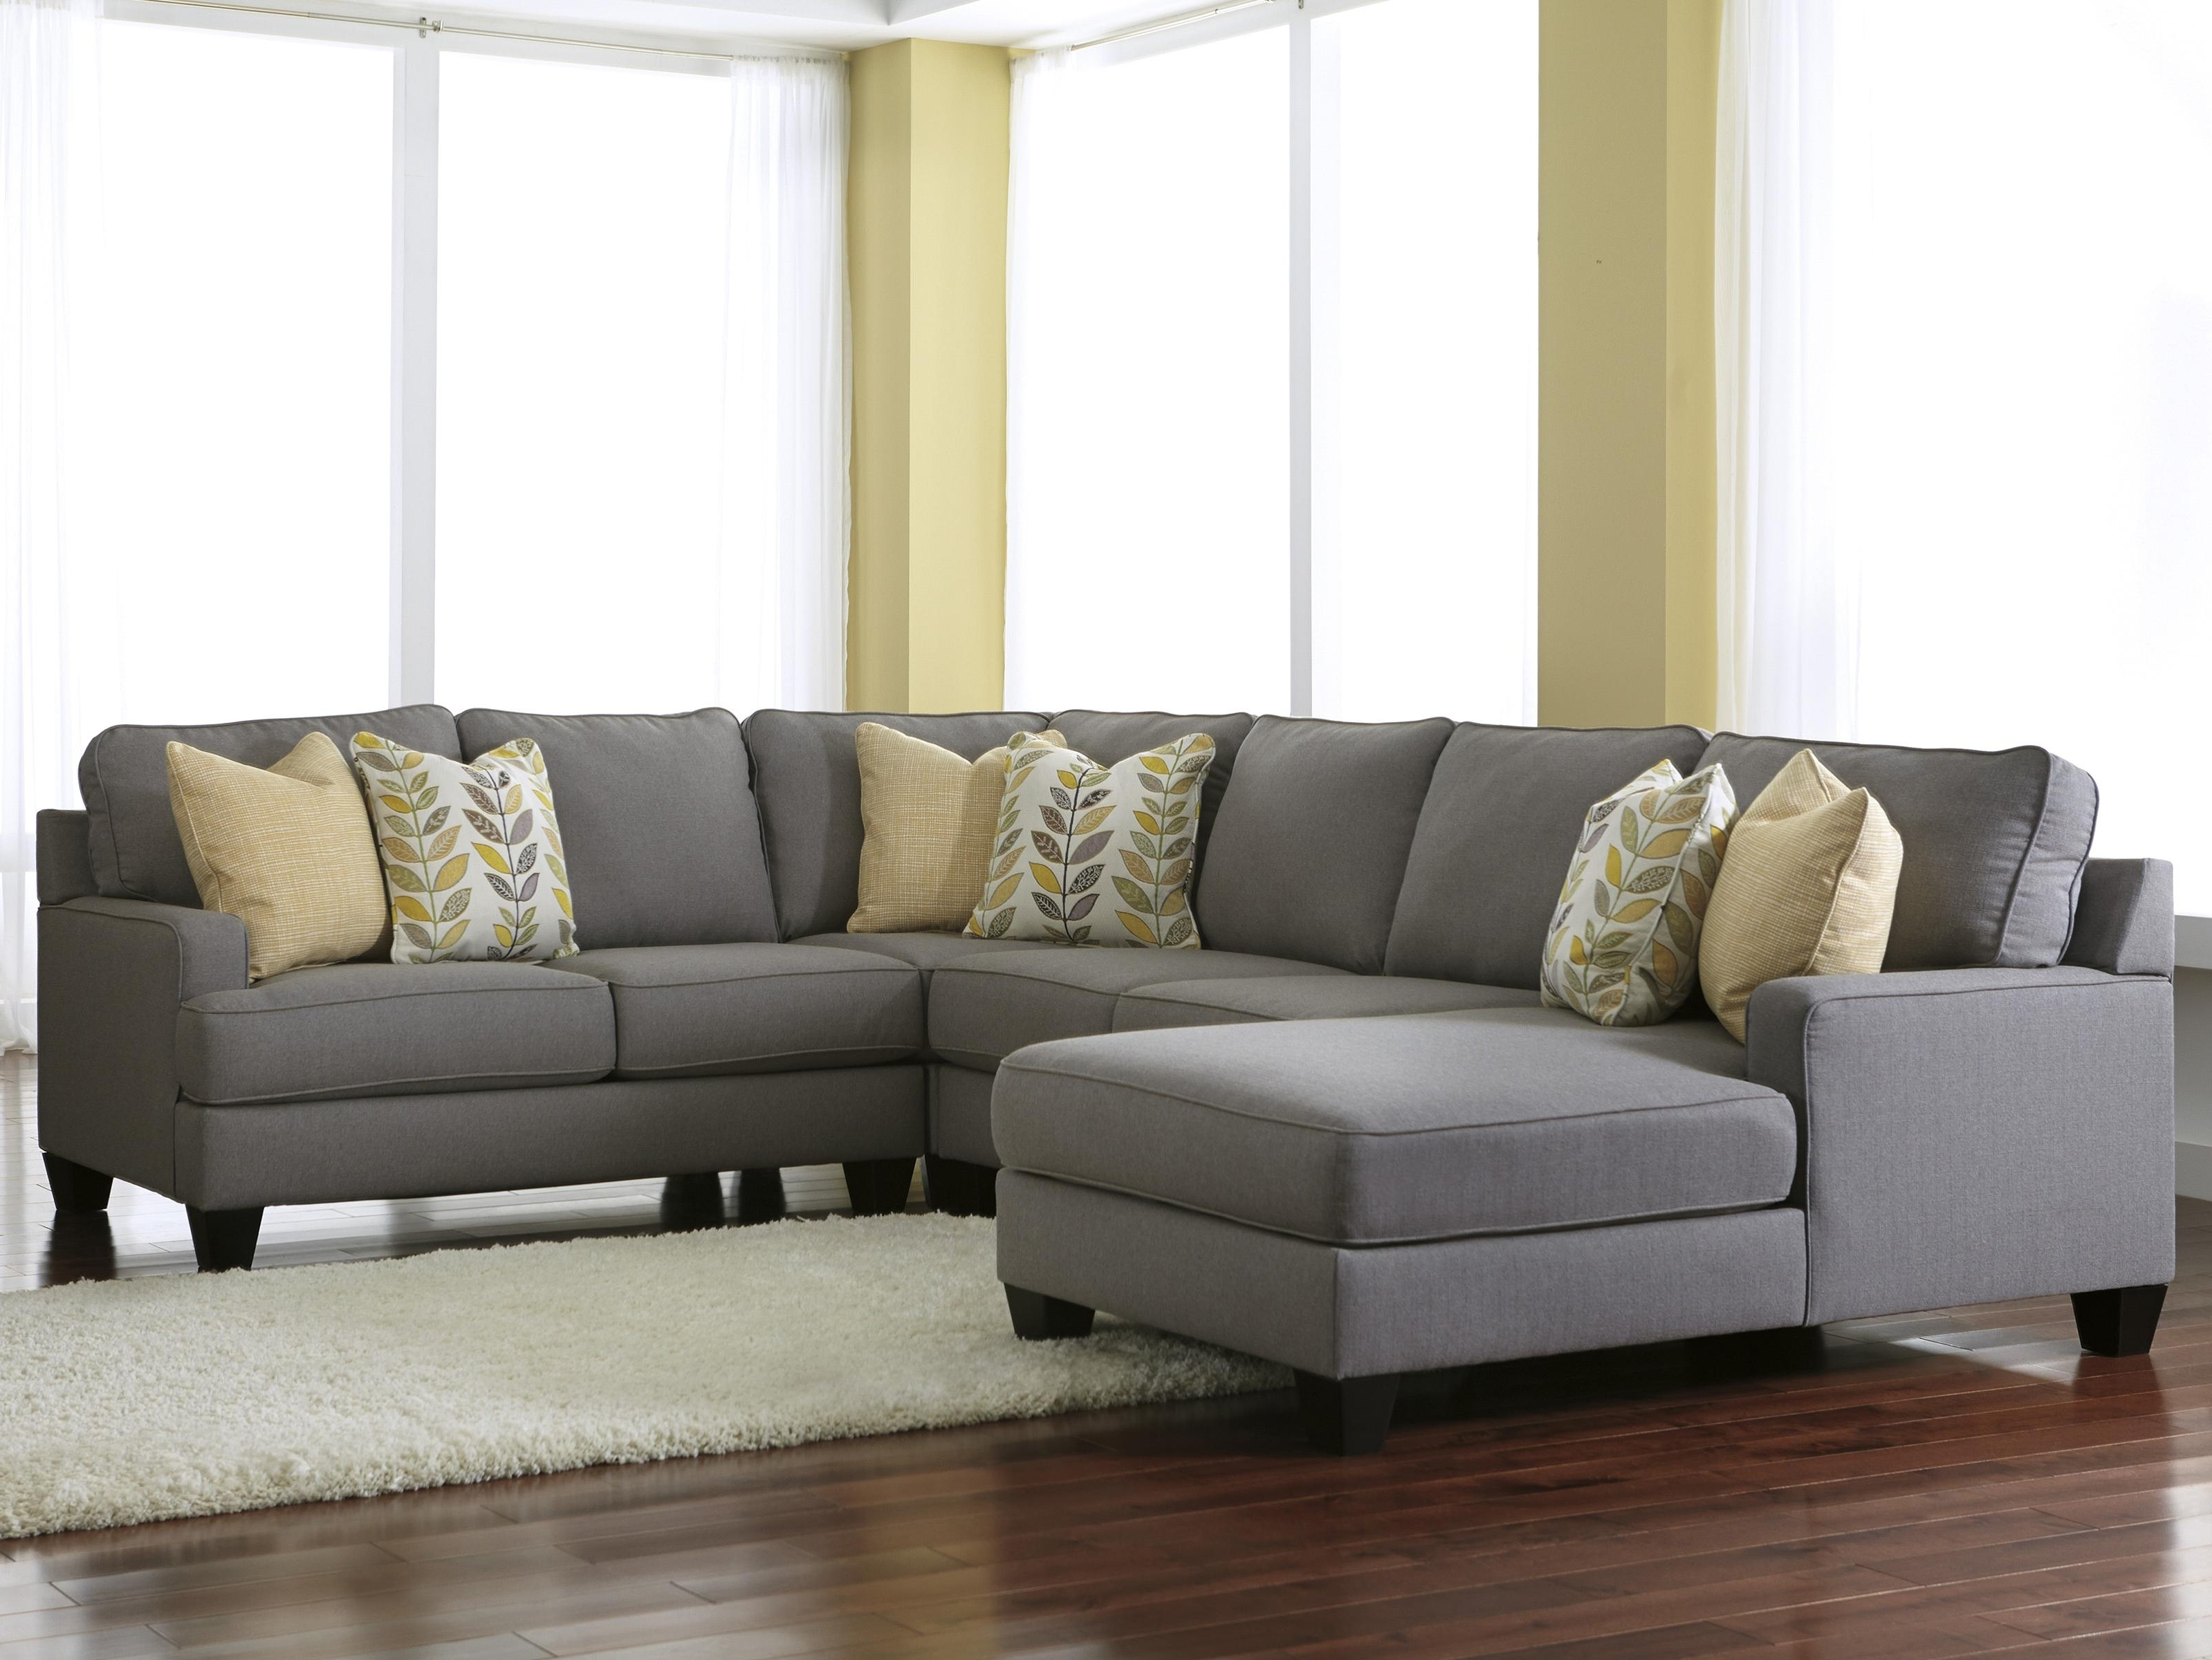 Fashionable Modern 4 Piece Sectional Sofa With Left Chaise & Reversible Seat For Lancaster Pa Sectional Sofas (View 5 of 15)